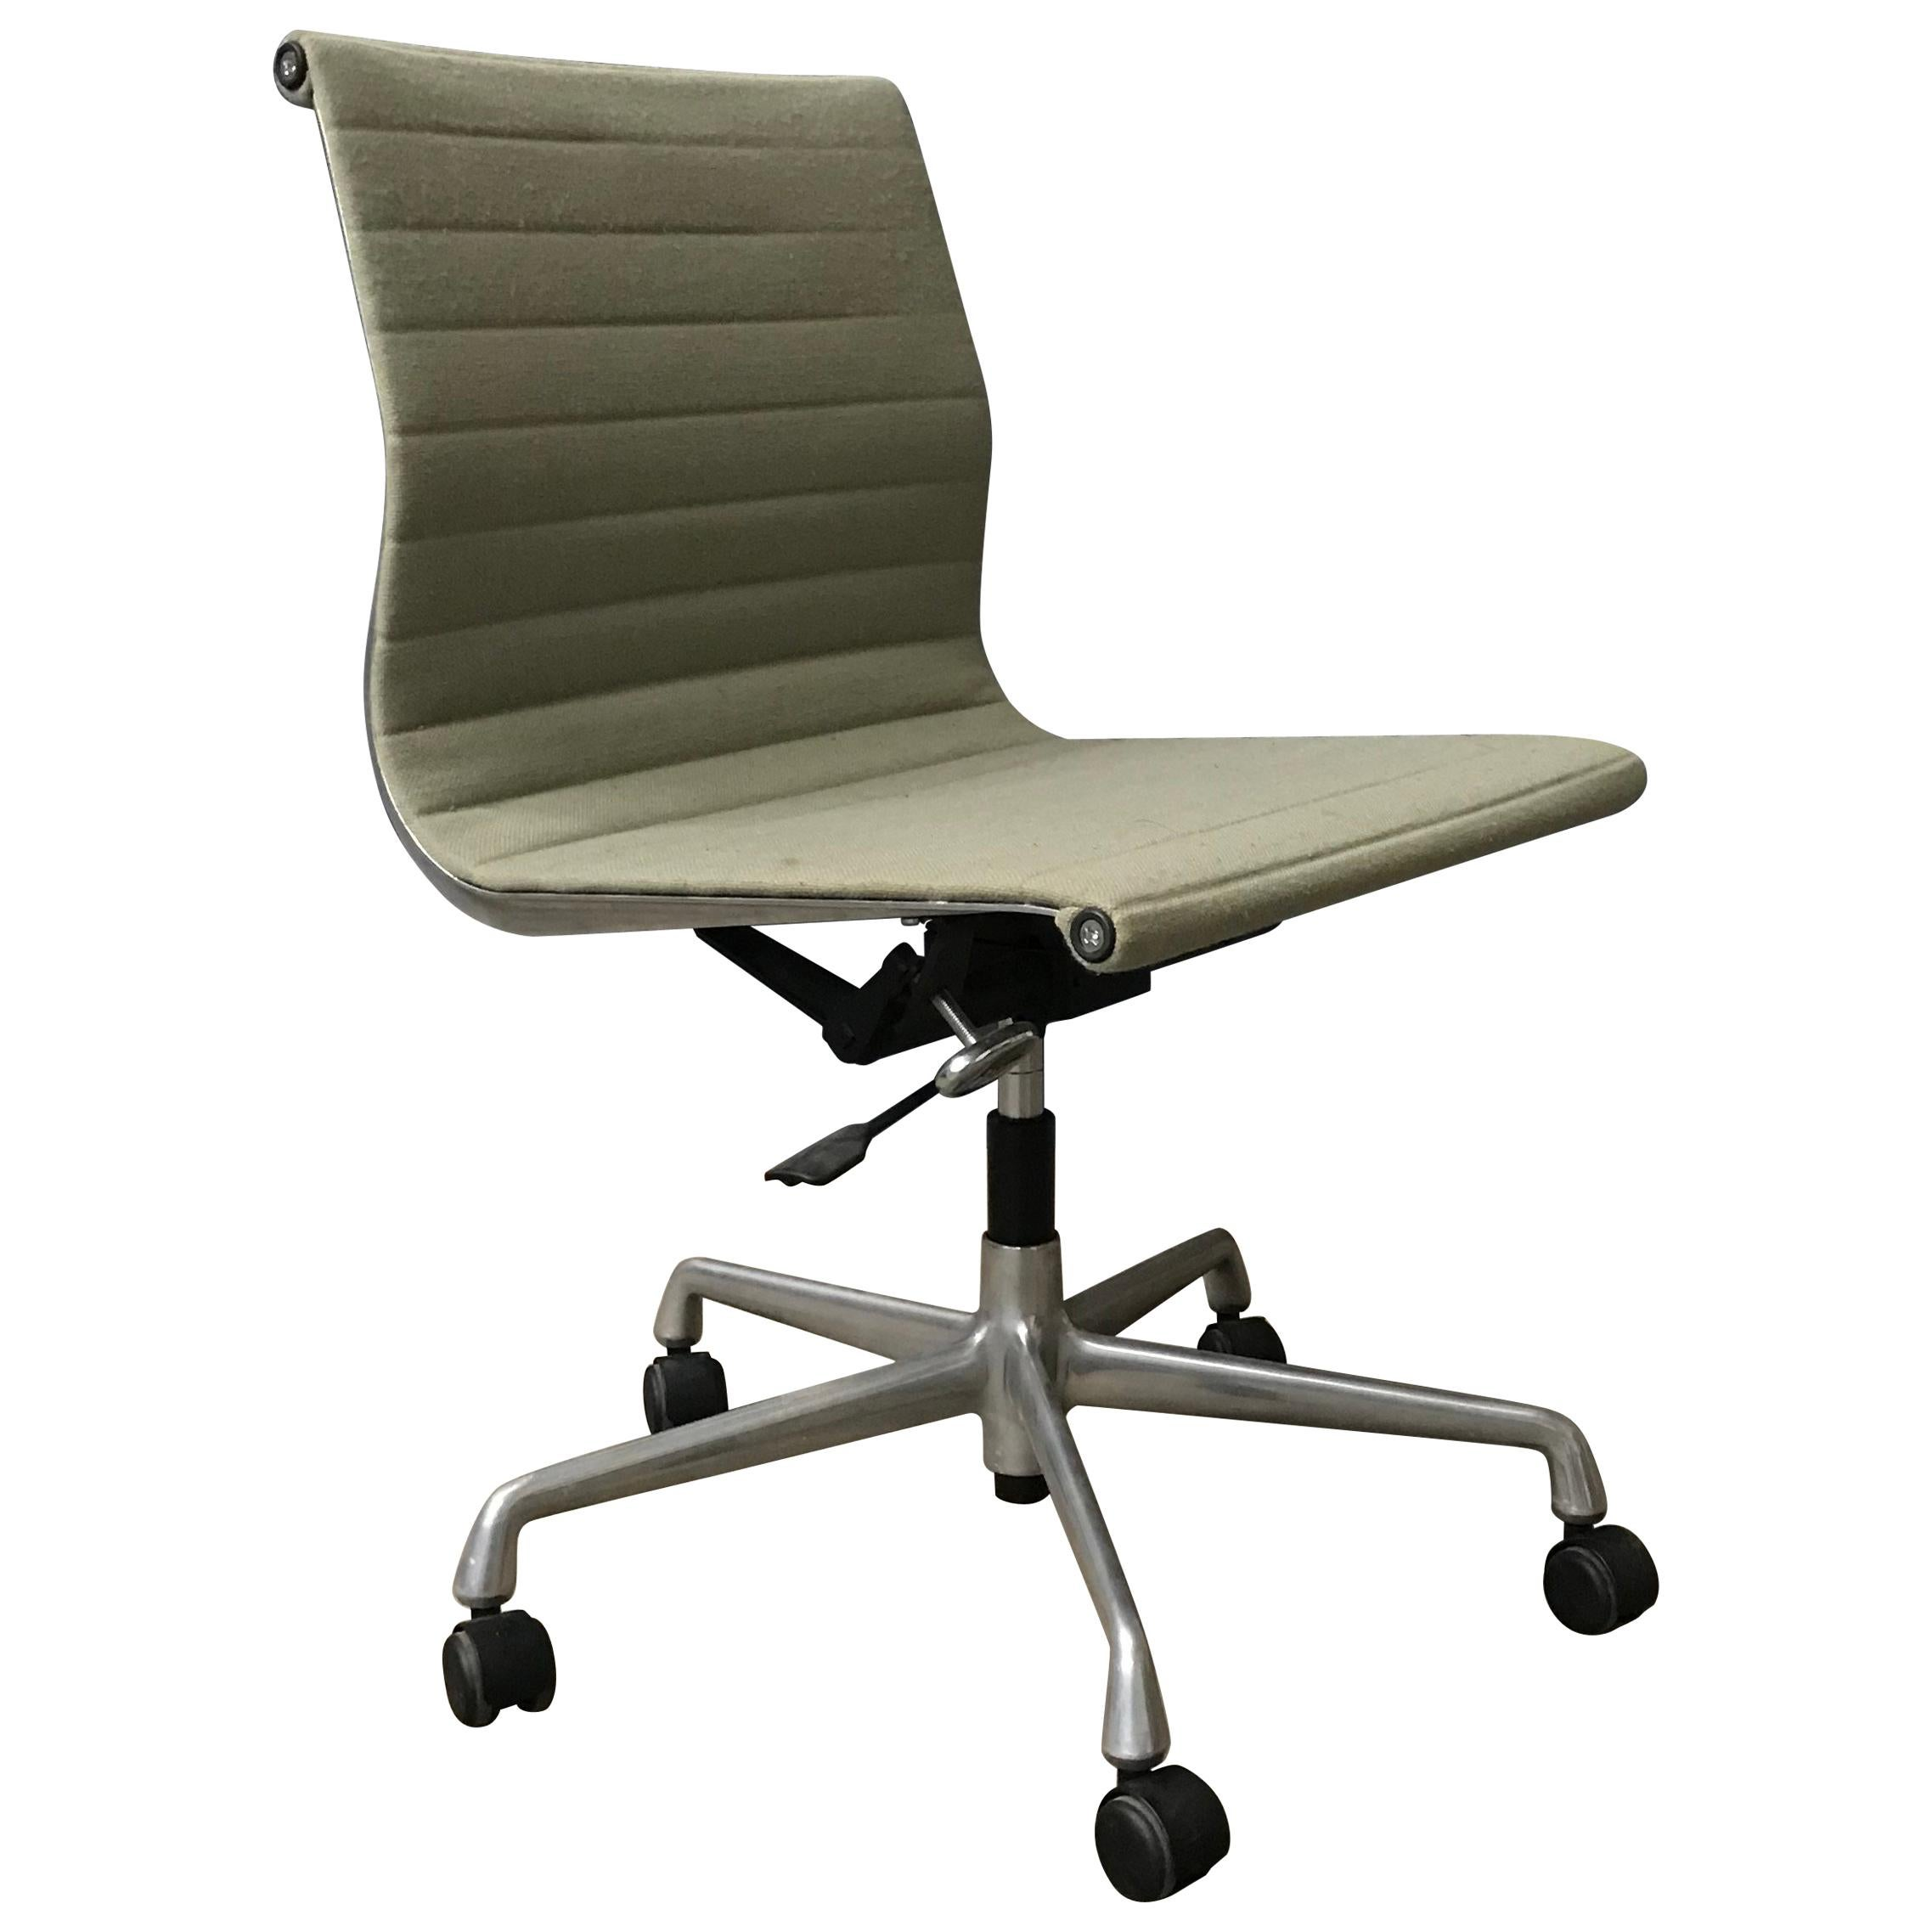 Amazing 1958 Ray And Charles Eames Fabric Adjust Tilt Office Chair 4 Wheels No Arms Forskolin Free Trial Chair Design Images Forskolin Free Trialorg